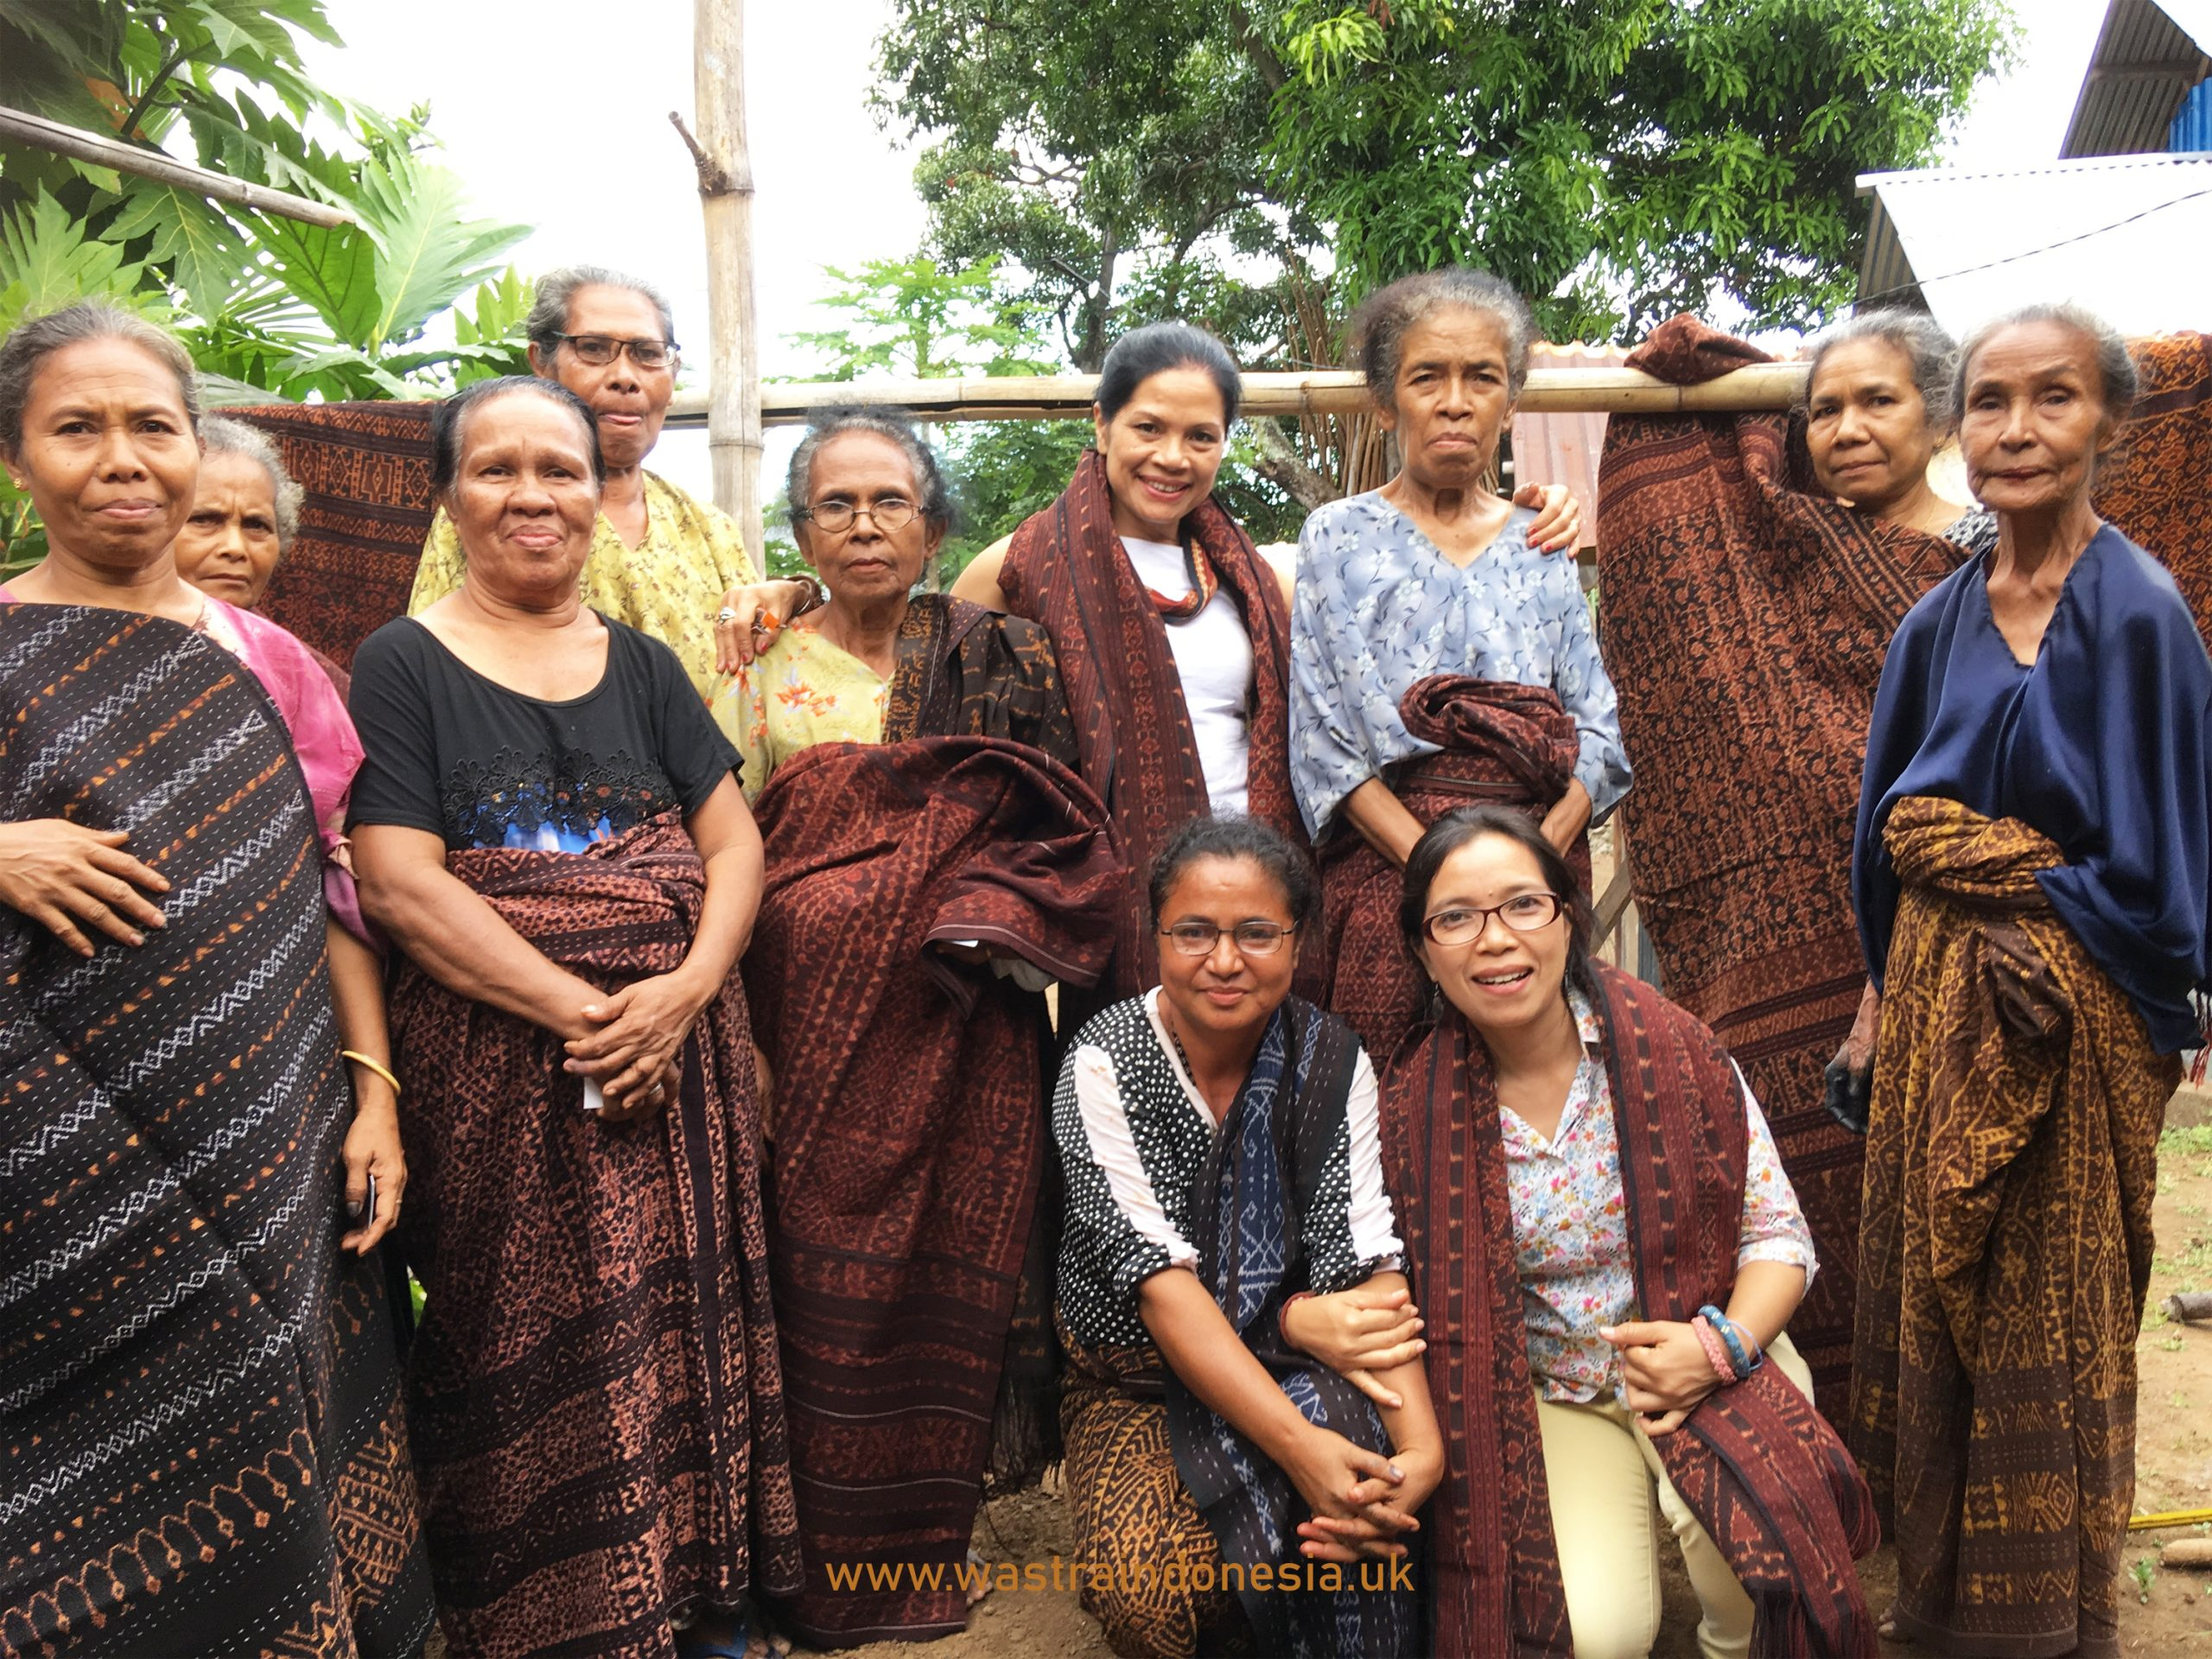 A day with Weavers of Nggela, Flores, East Nusa Tenggara